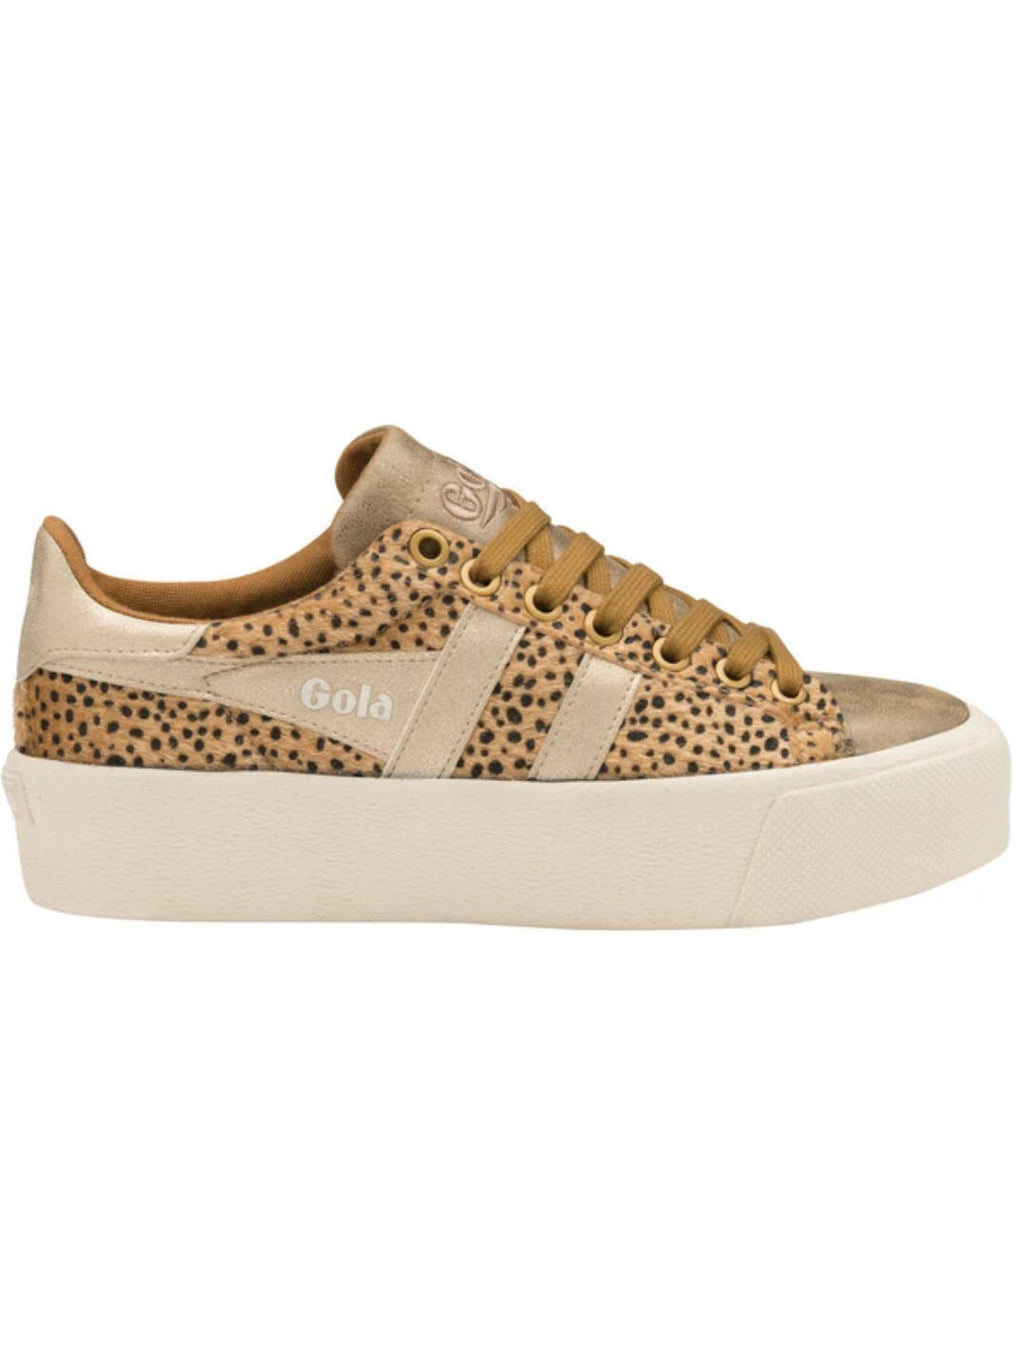 Gola Orchid Savanna Sneaker in Tan/Gold